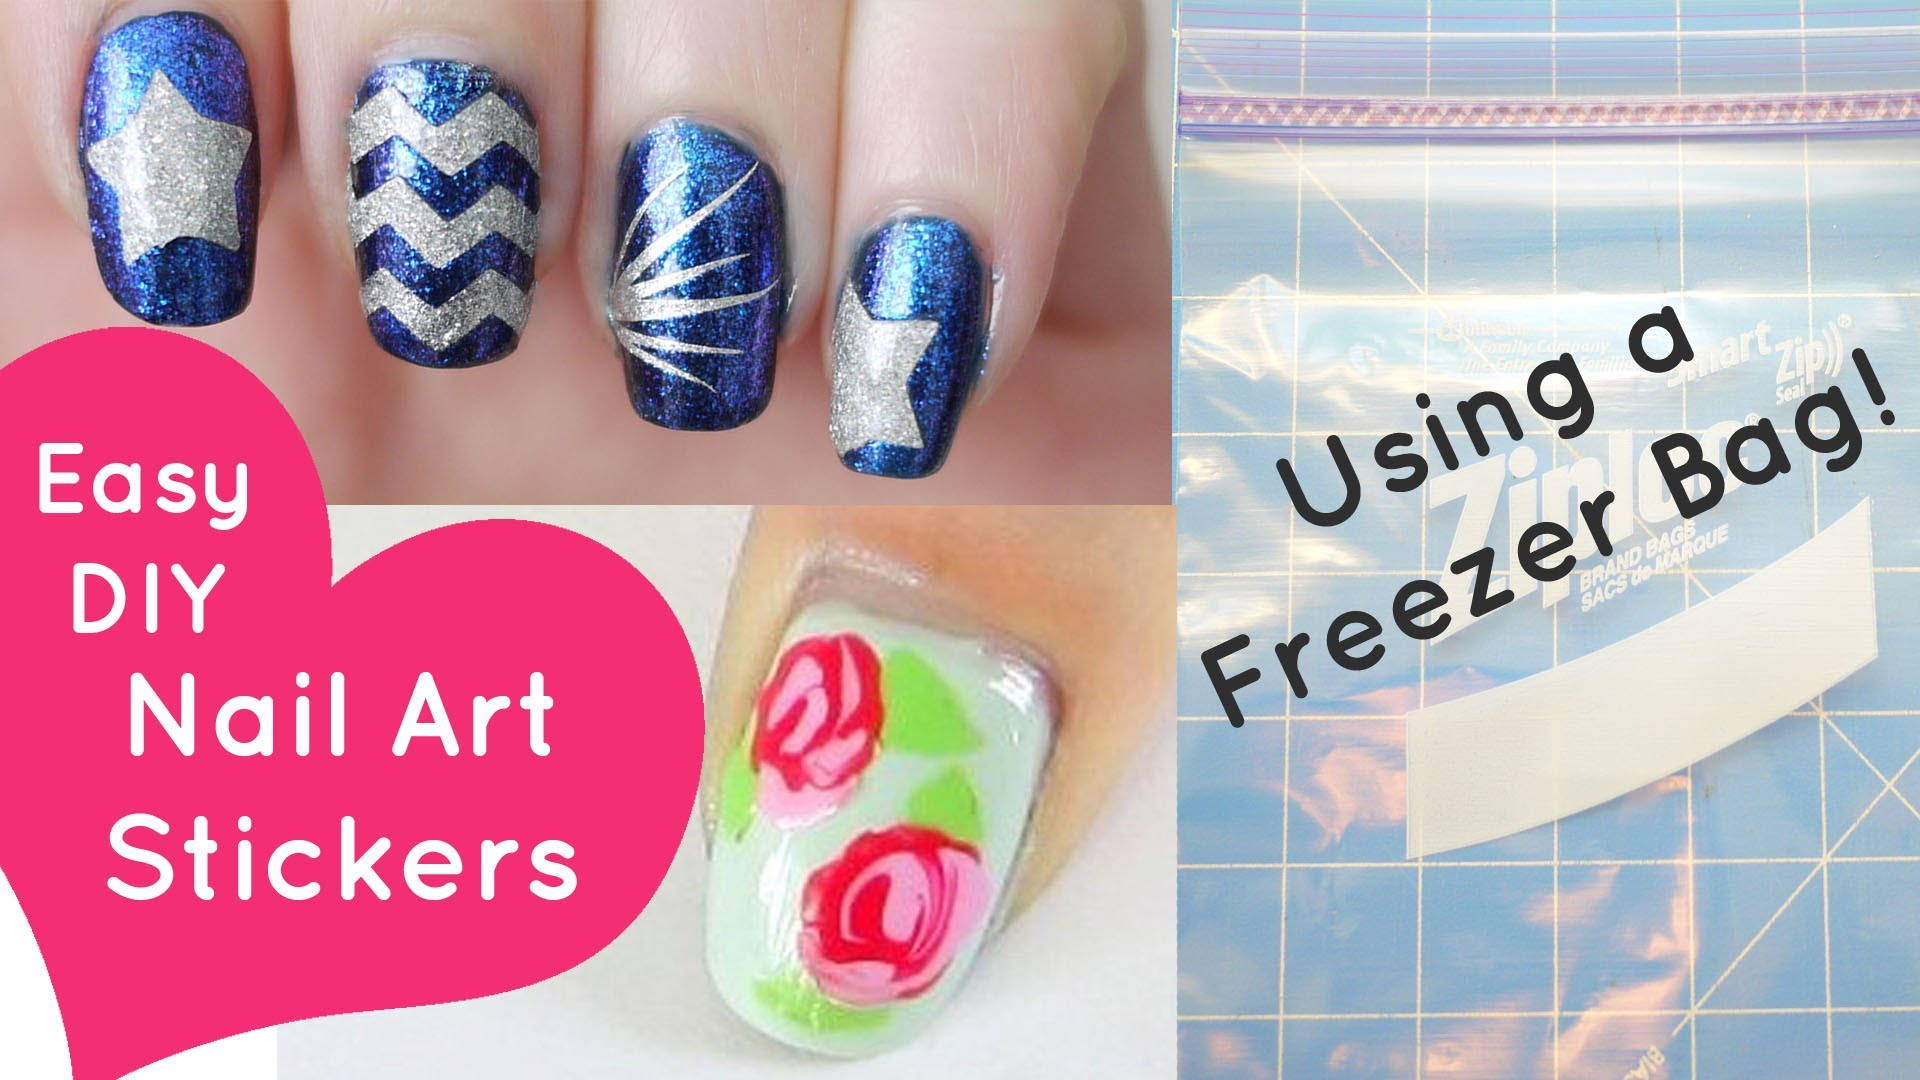 Do It Yourself Nail Art Ideas Best Nail Ideas - At home nail art designs for beginners